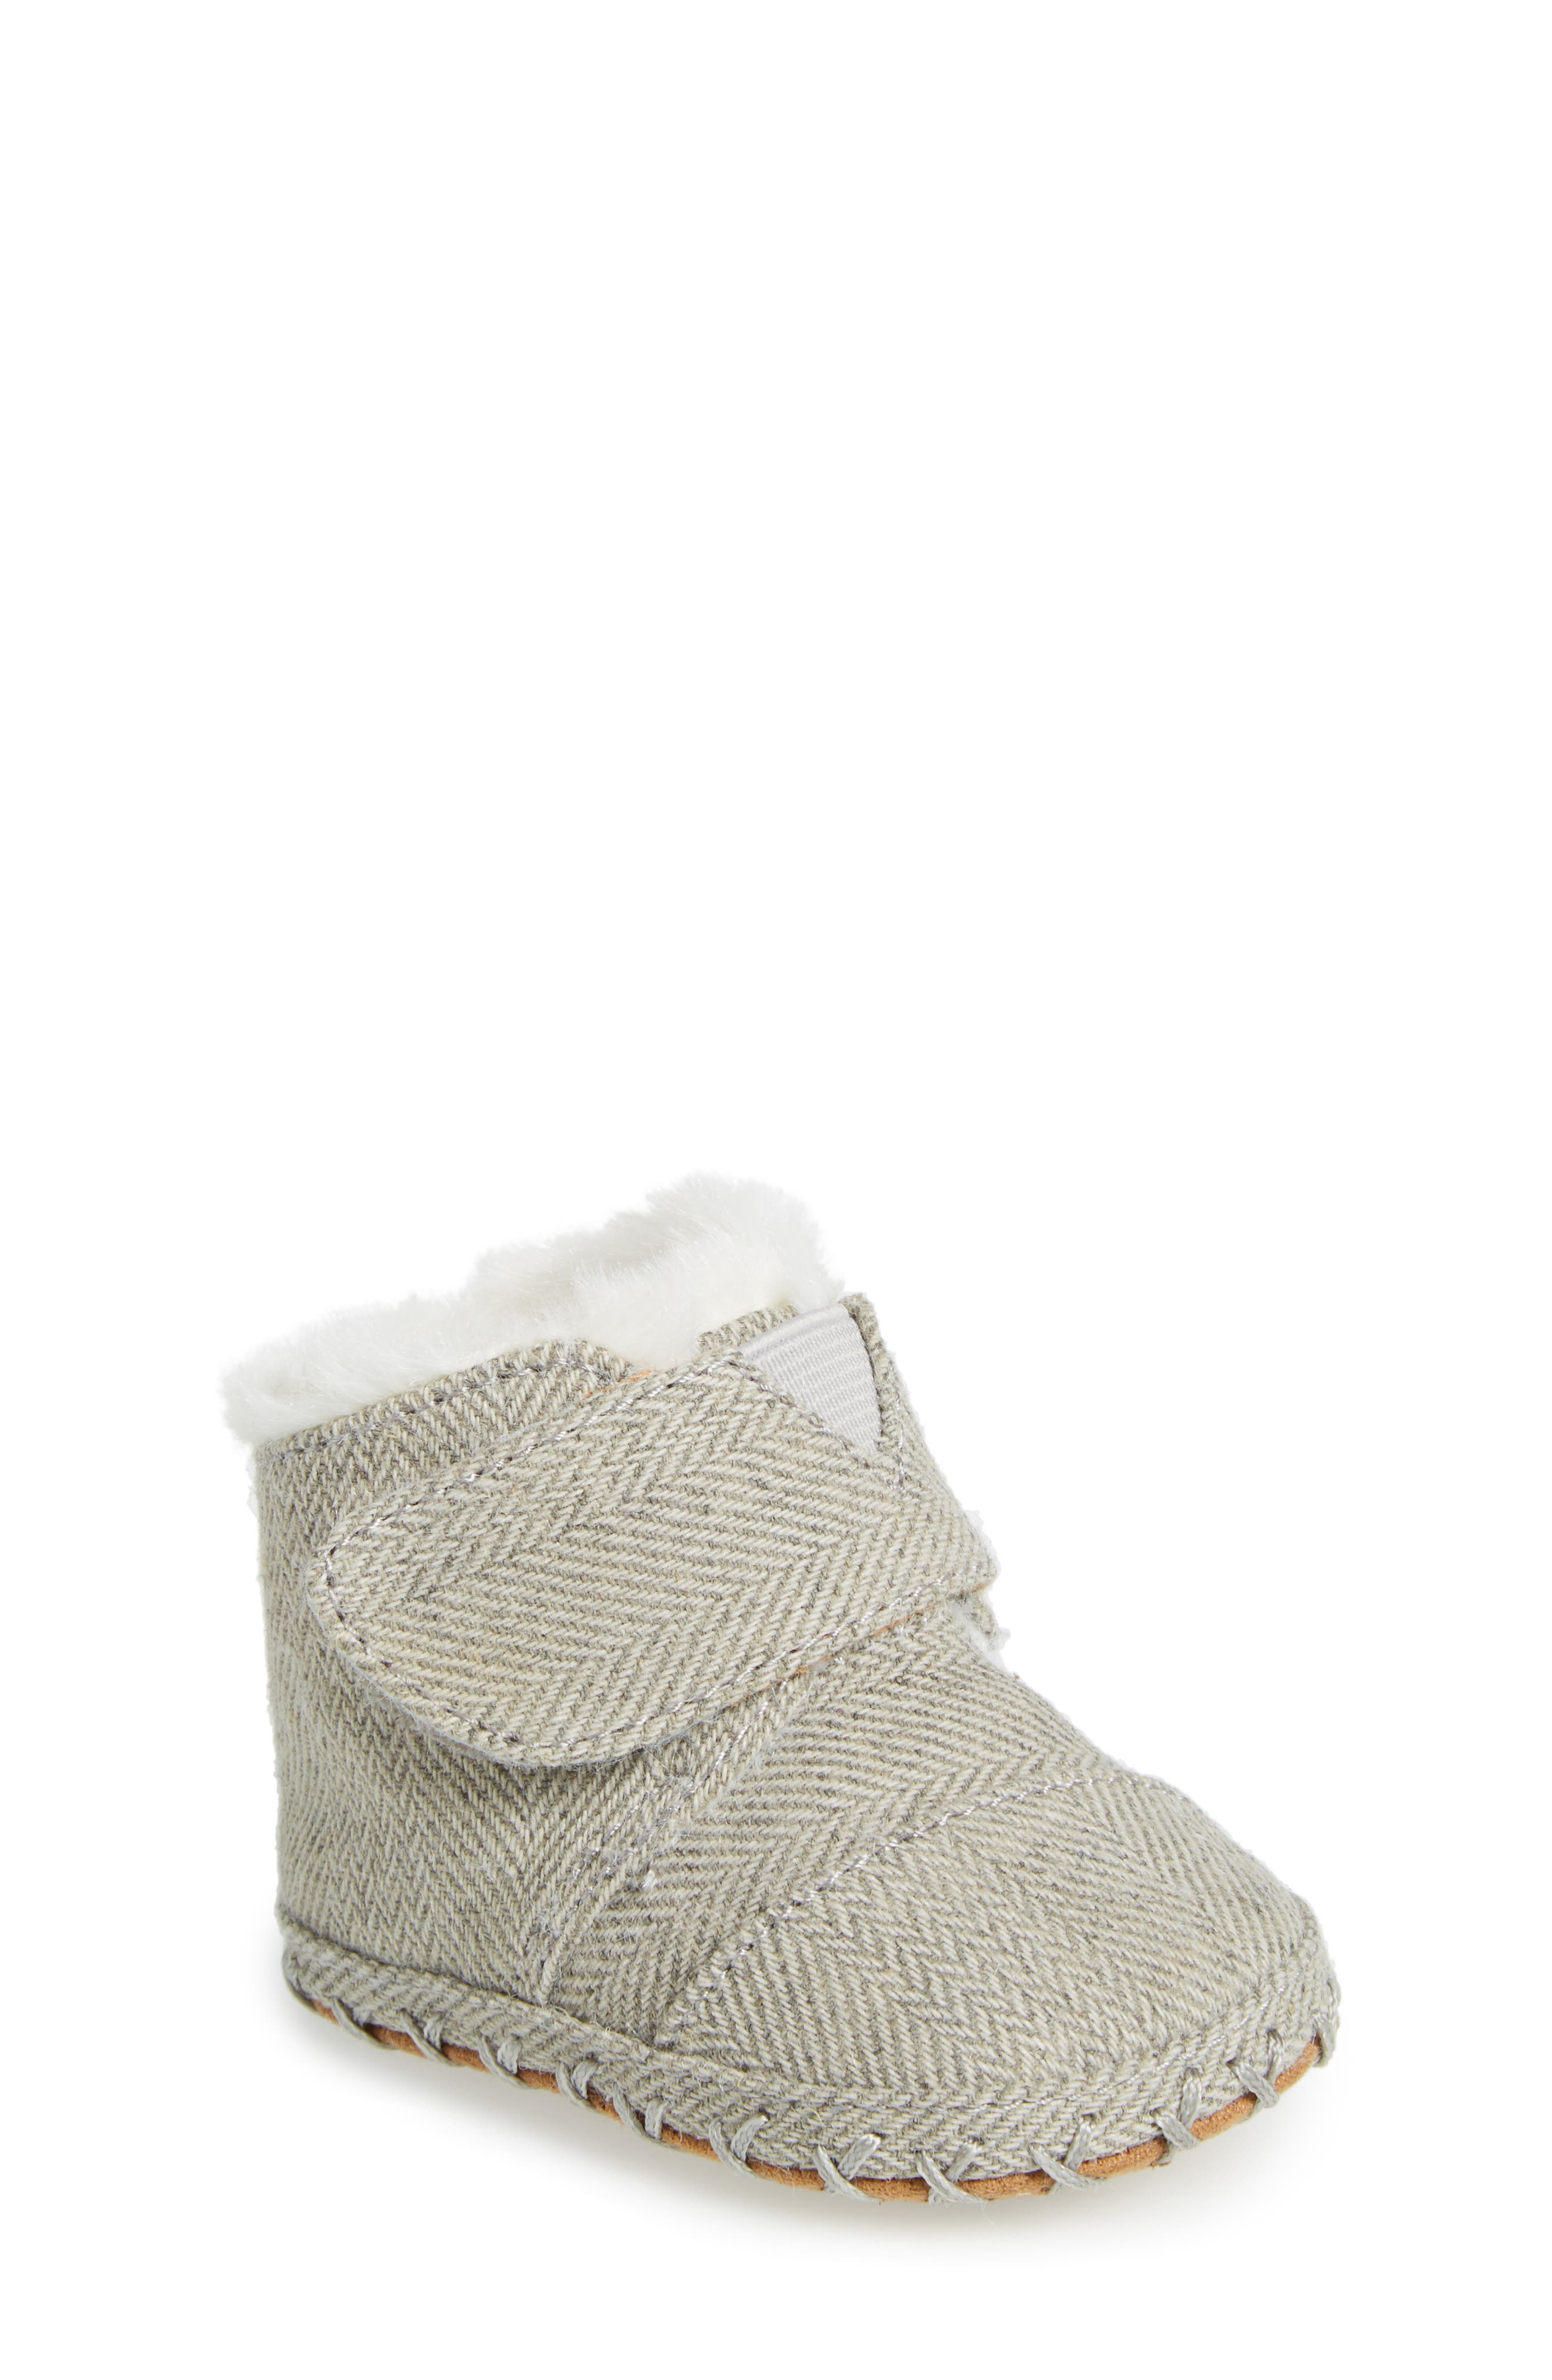 Alternate Image 1 Selected - TOMS Tiny Cuna Faux Fur Crib Bootie (Baby)